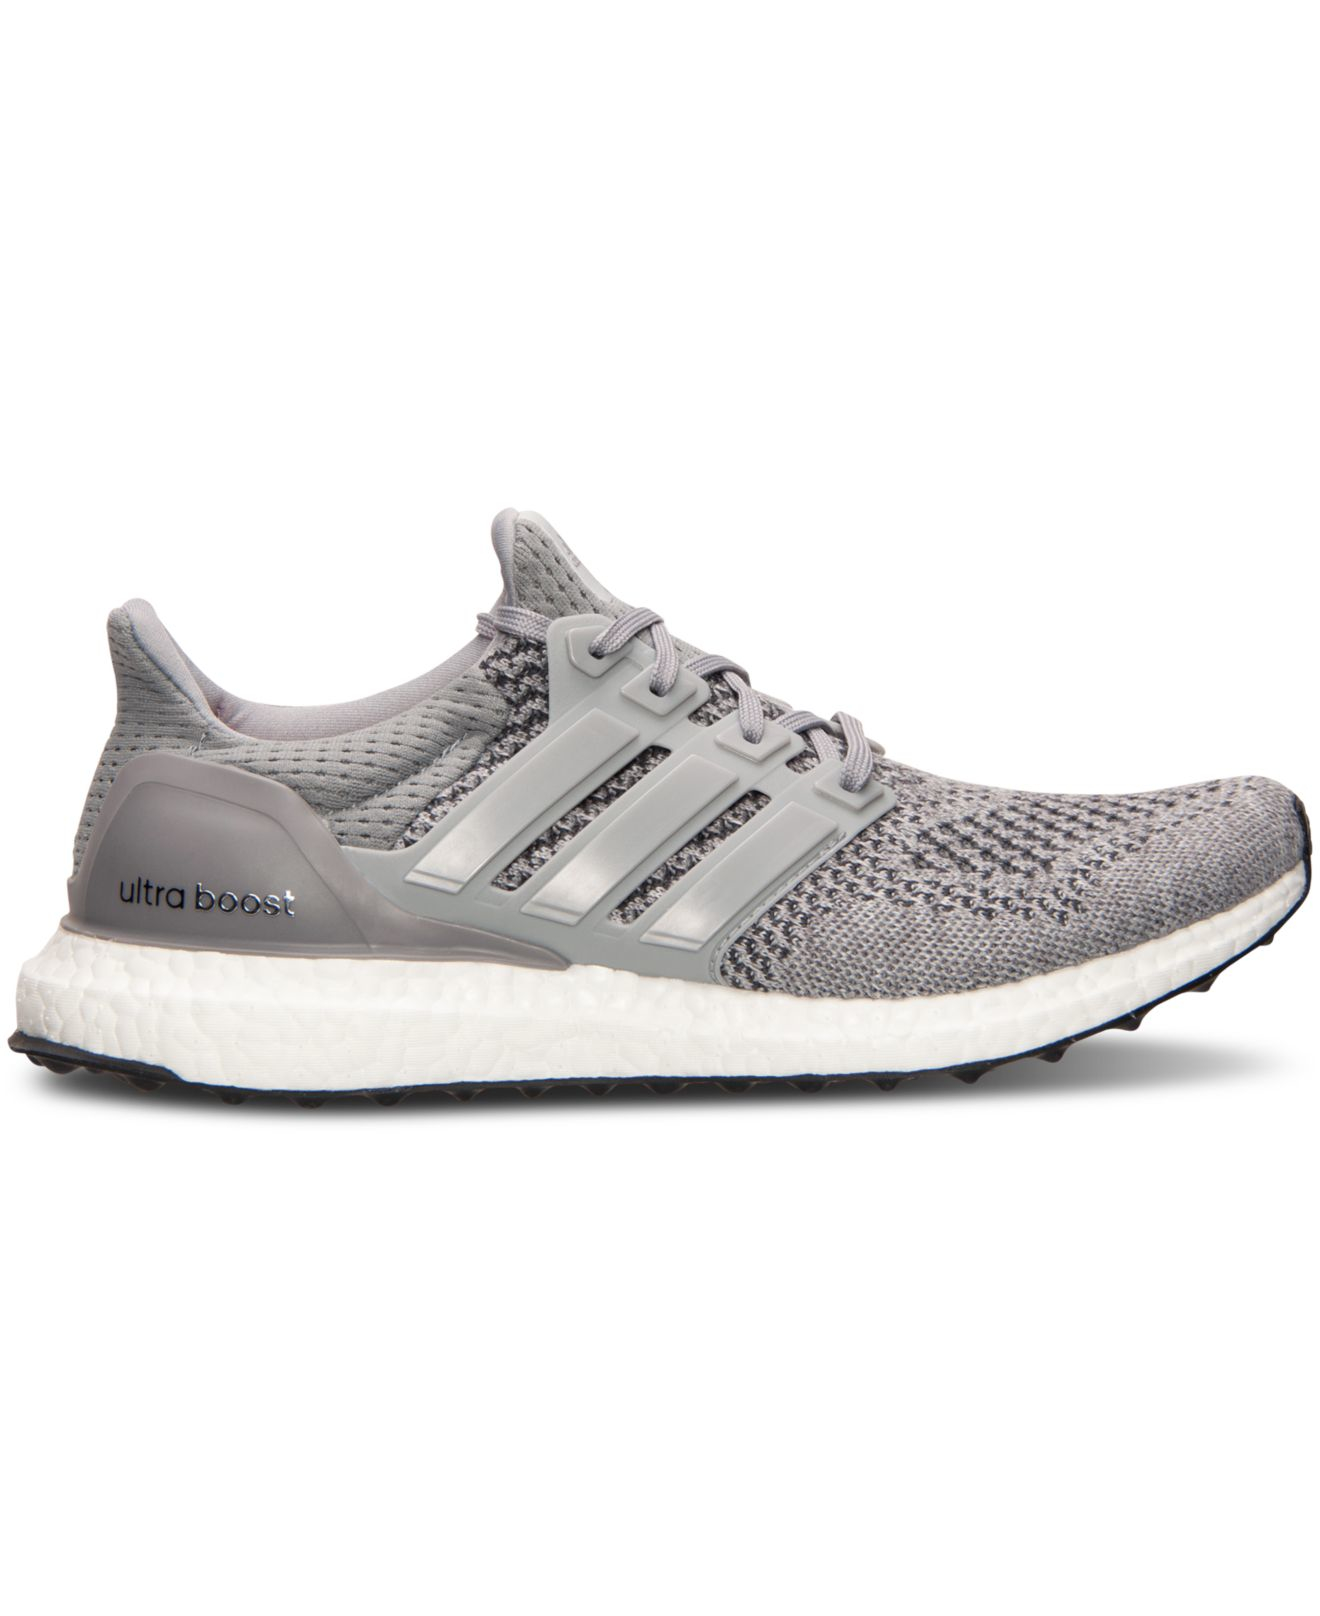 b528dda12b43d Lyst - adidas Men s Ultra Boost Running Sneakers From Finish Line in ...